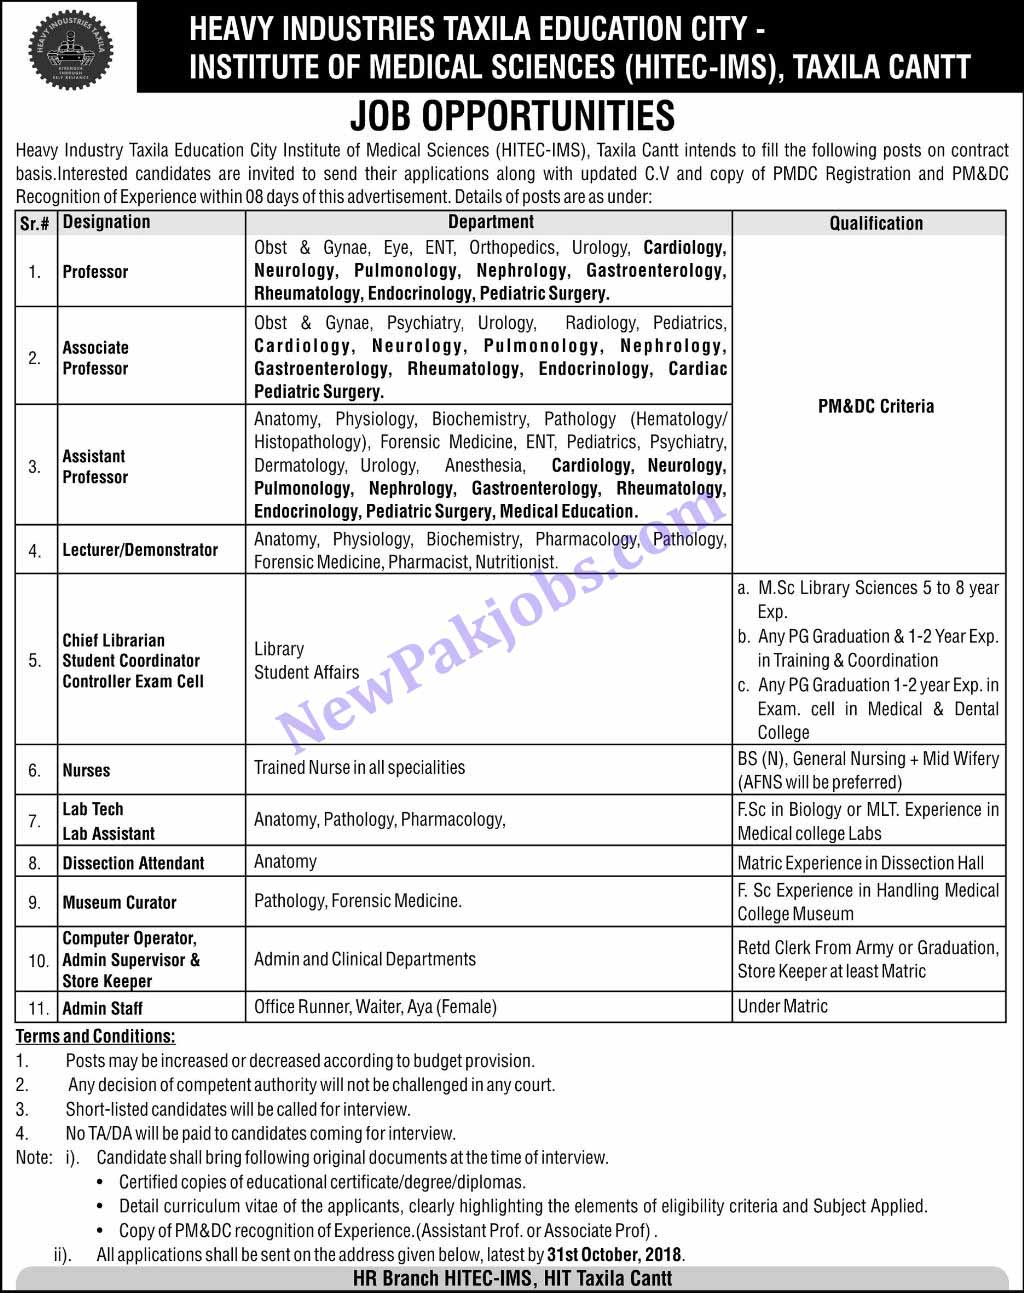 Jobs-in-Heavy-Industries-Taxila-Education-City-today-24-Oct-2018